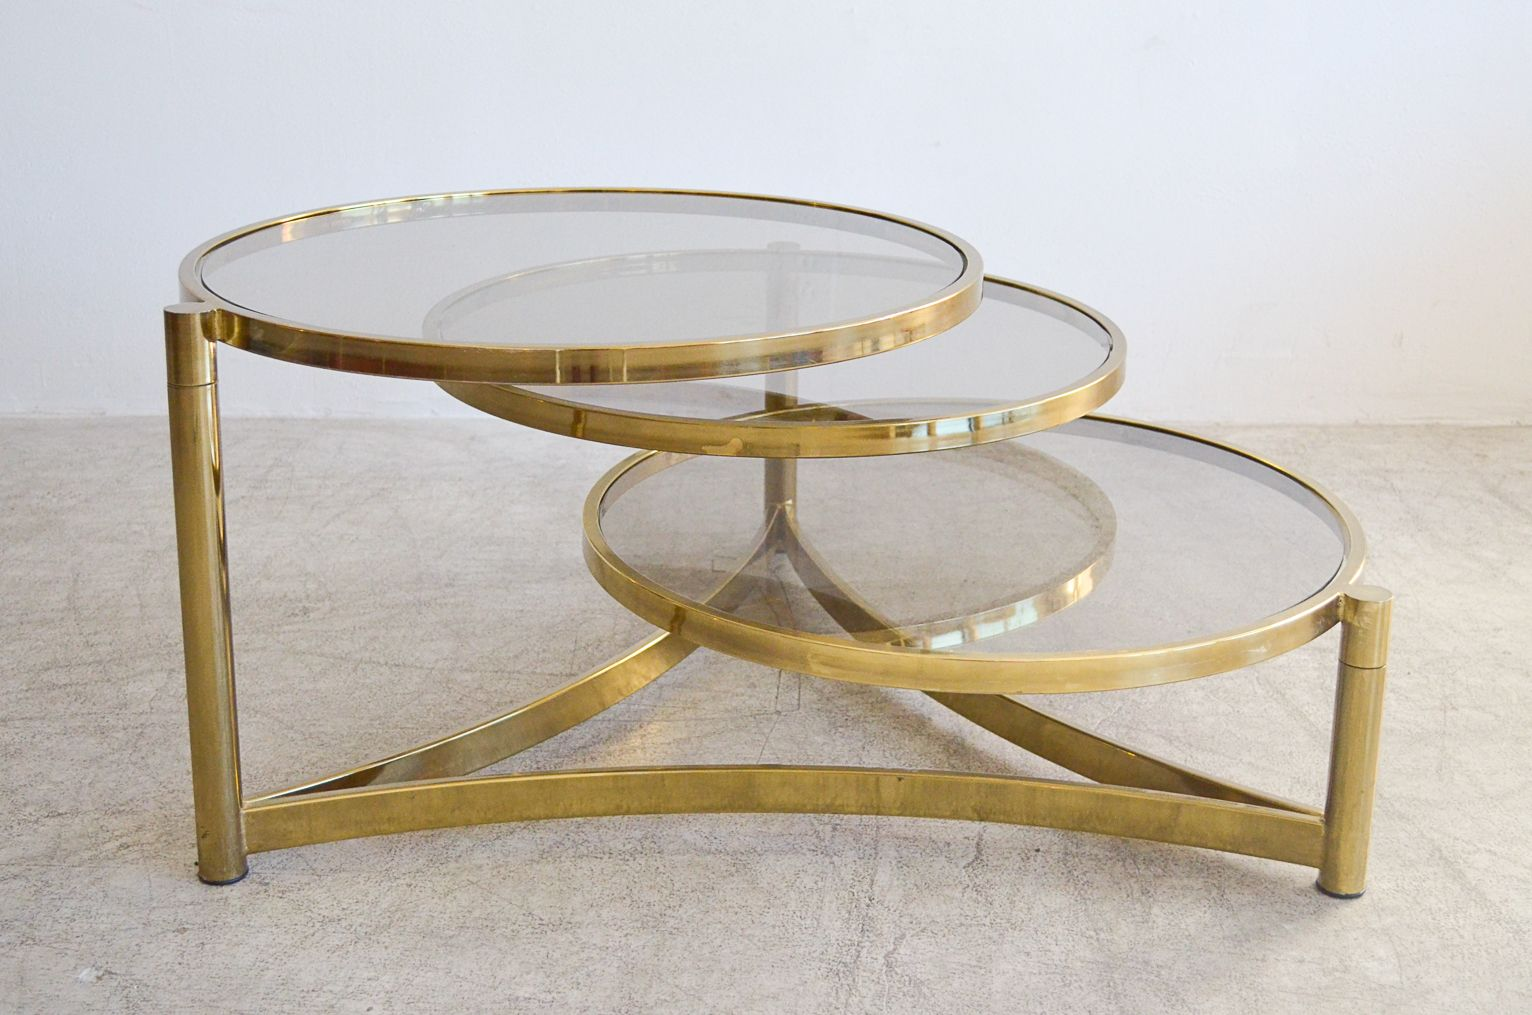 Sold Milo Baughman Tri Level Brass And Glass Swivel Coffee Table The Modern Vault Milo Baughman Coffee Table Circular Coffee Table [ 1015 x 1532 Pixel ]